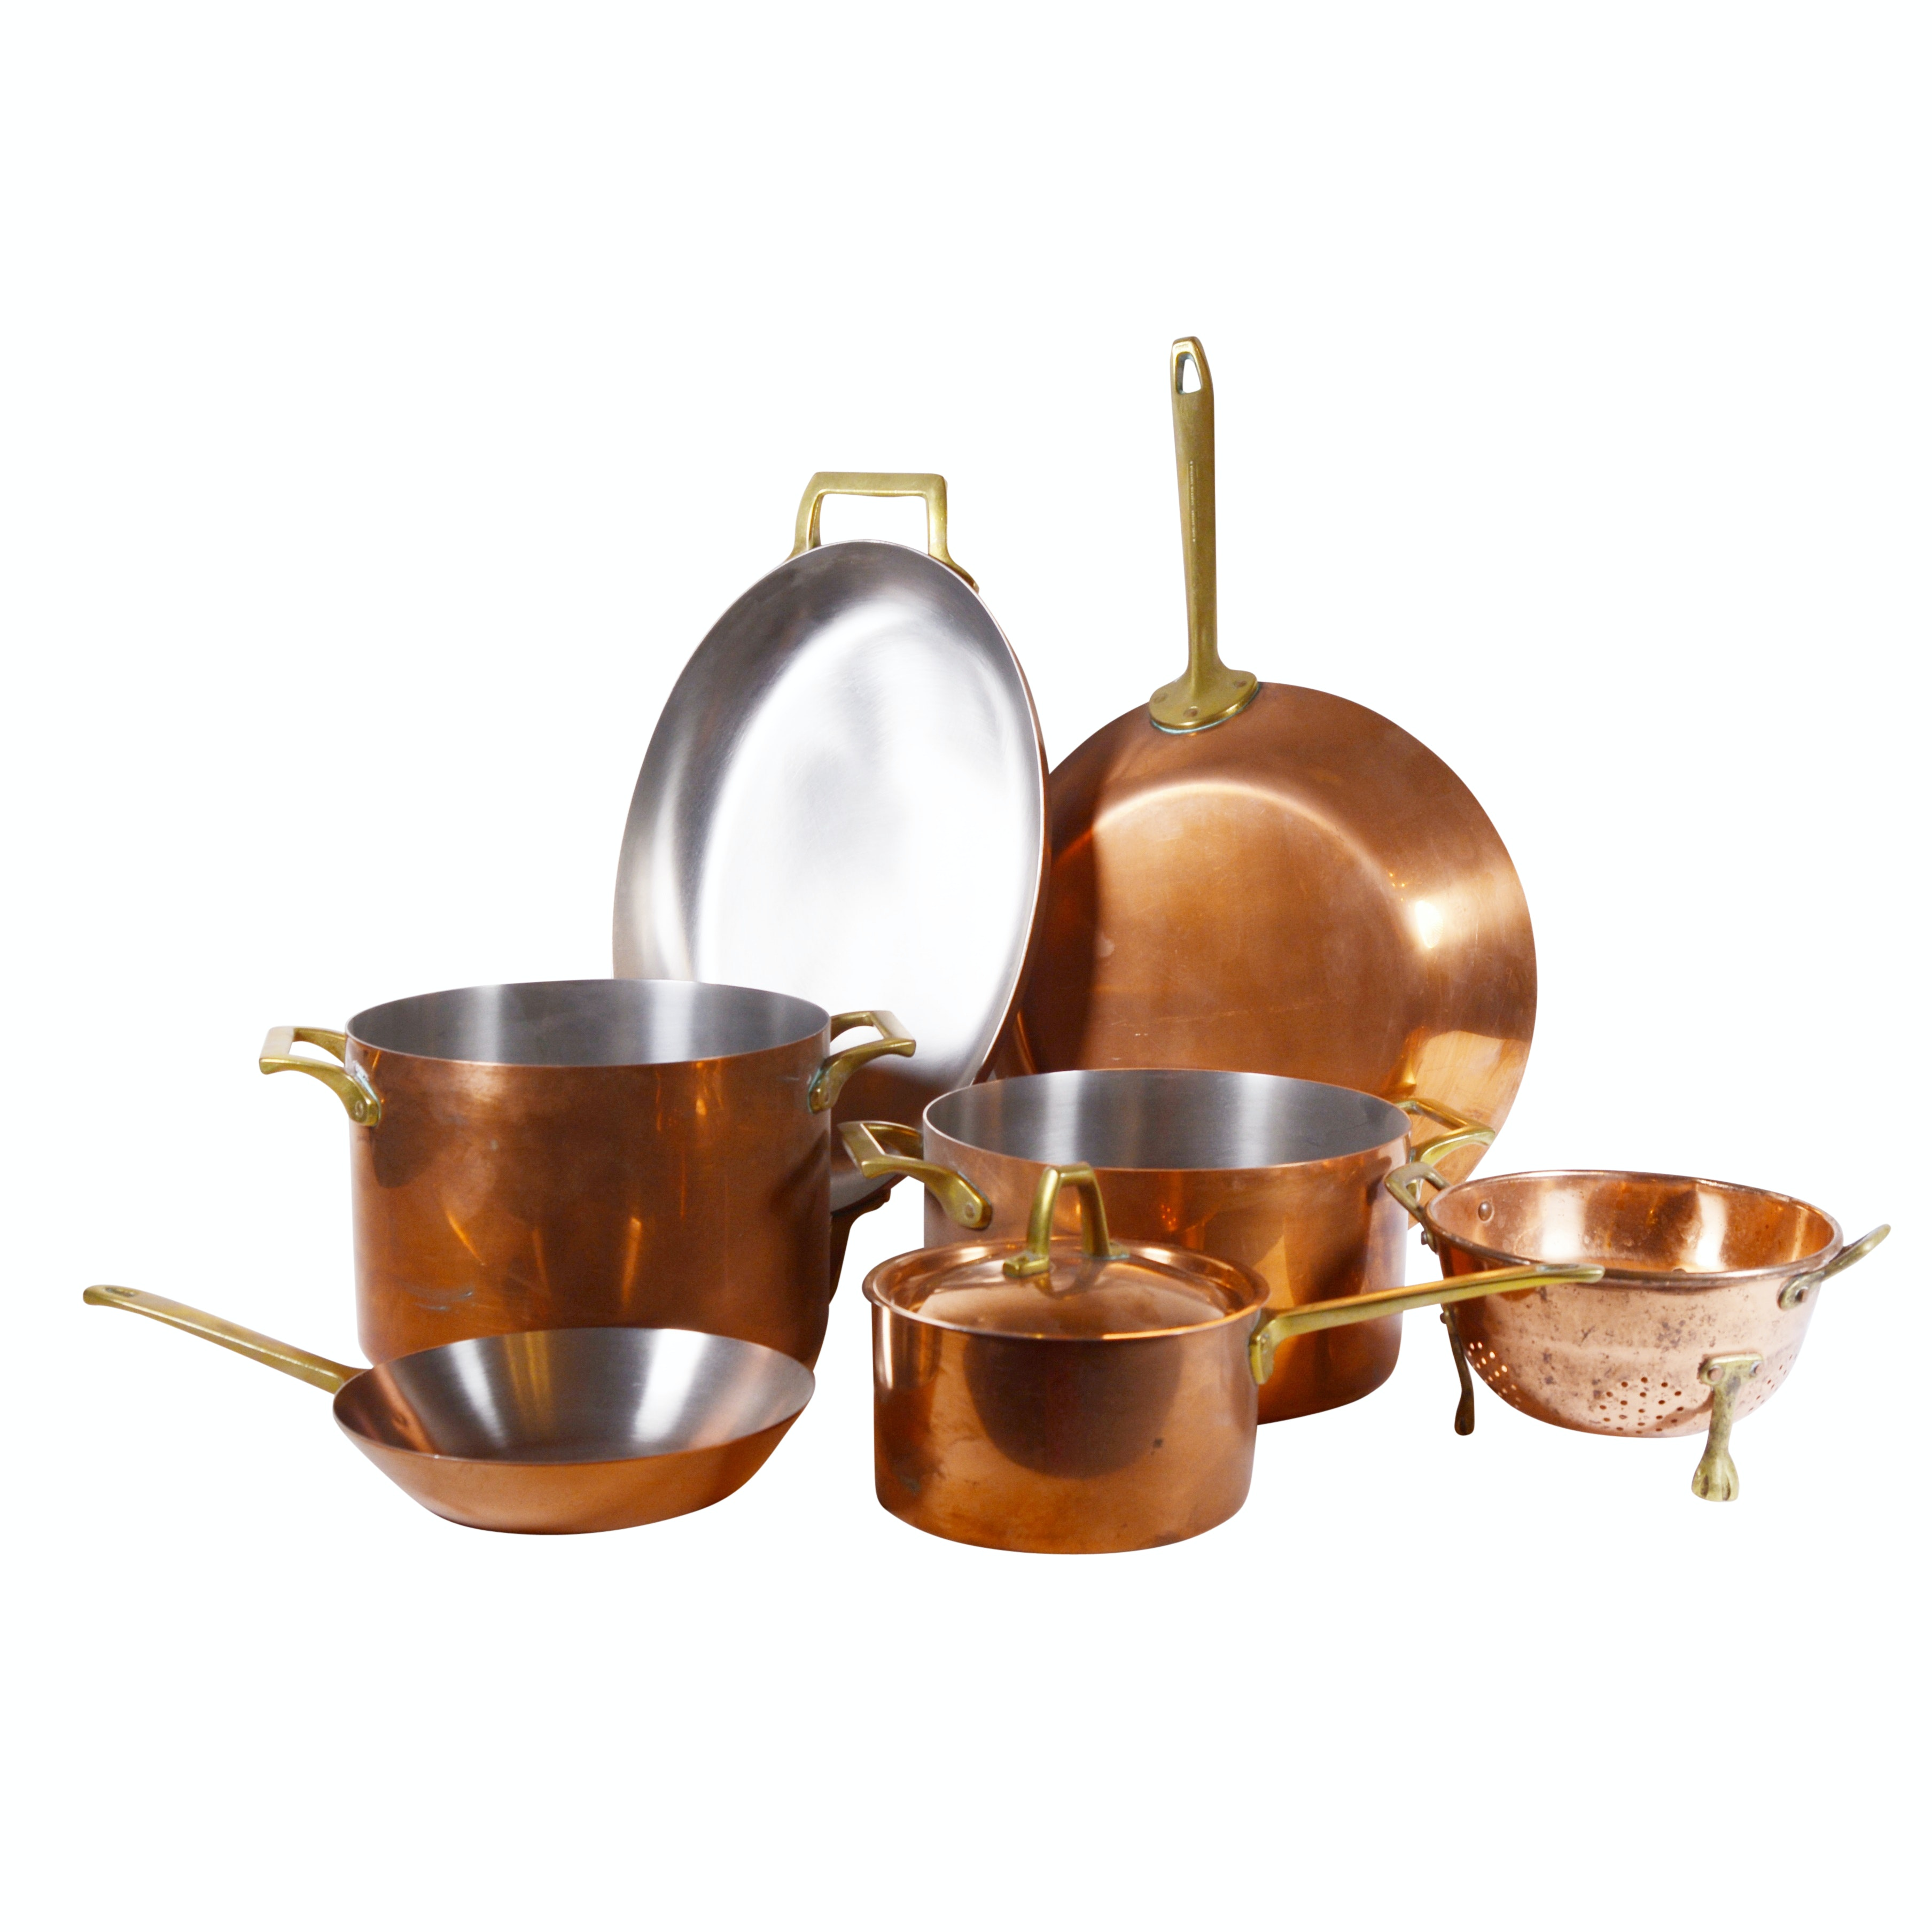 Collection of Paul Revere Limited Edition Copper and Brass Pots and Pans